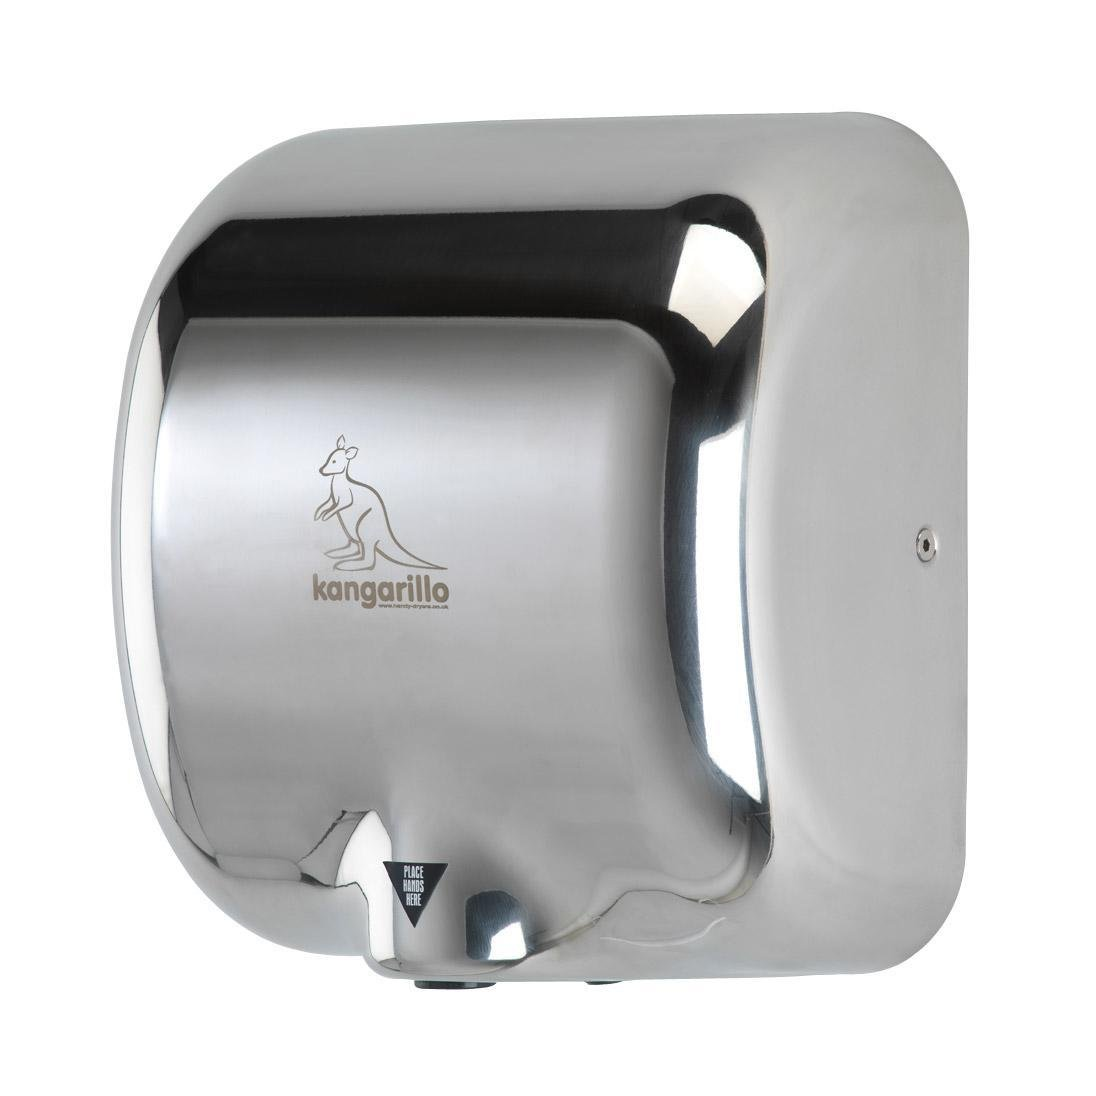 Handy Dryers Kangarillo Hand Dryer, Silver HandyDryers 5060405130004